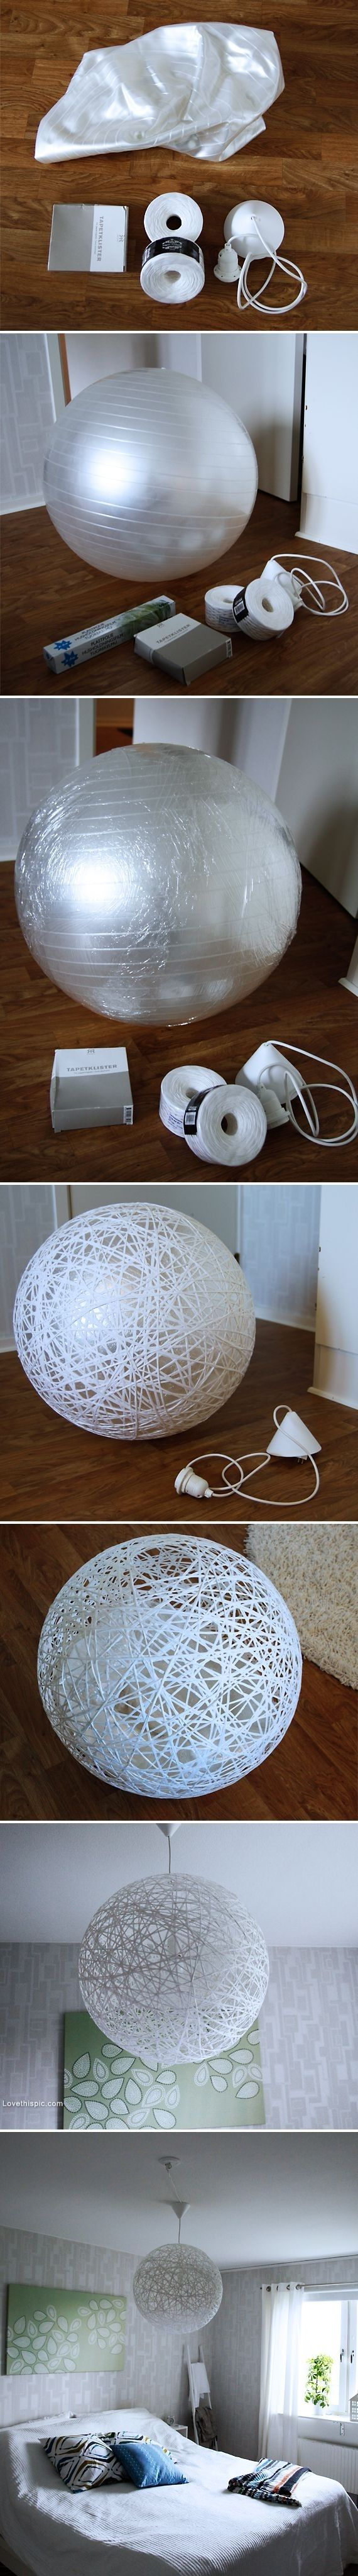 DIY String Lamp diy crafts craft ideas easy crafts diy ideas diy home diy decor easy diy home crafts diy decorations diy lighting diy decorating